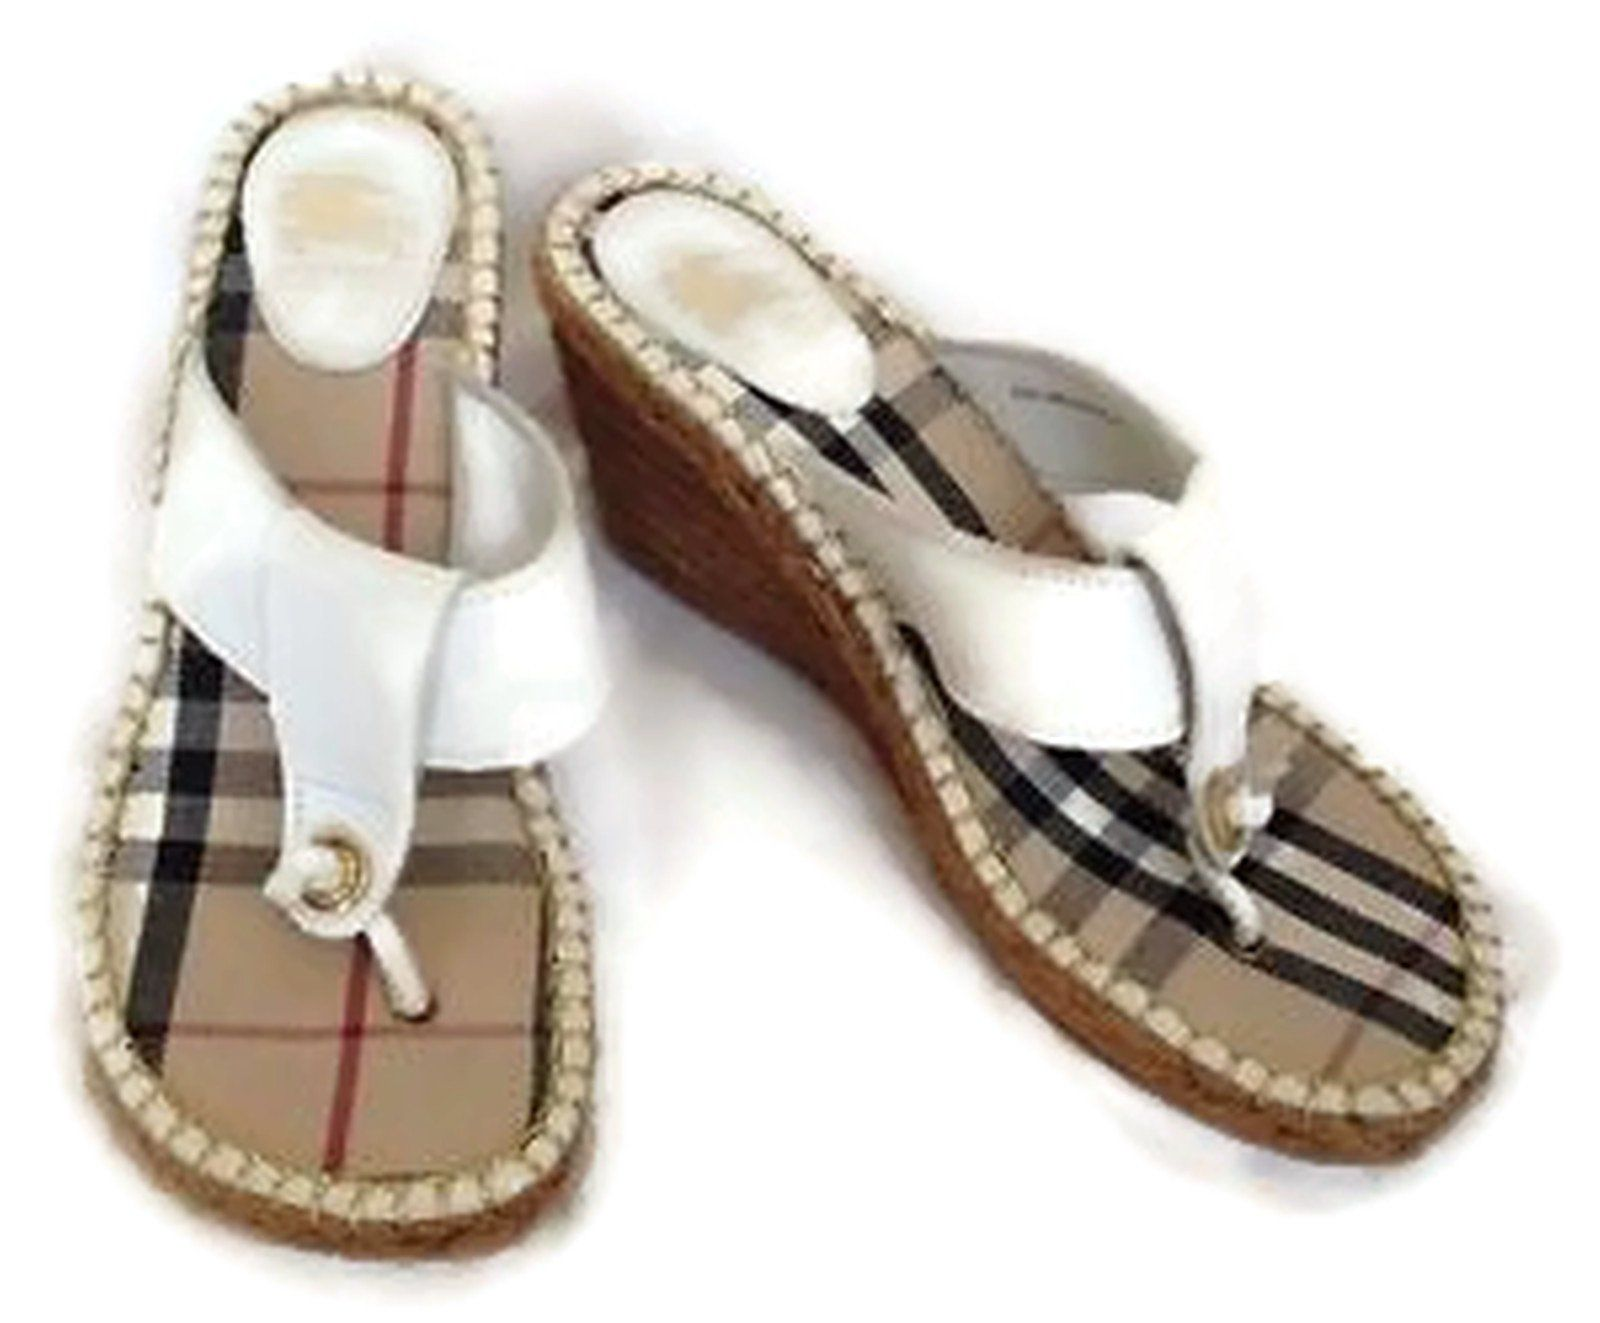 Burberry Espadrille Nova Check Thong Wedge Sandal White Leather Sz Tendencies Sandals Footbed 2 Strap Brown 41 Espadrilles And Products